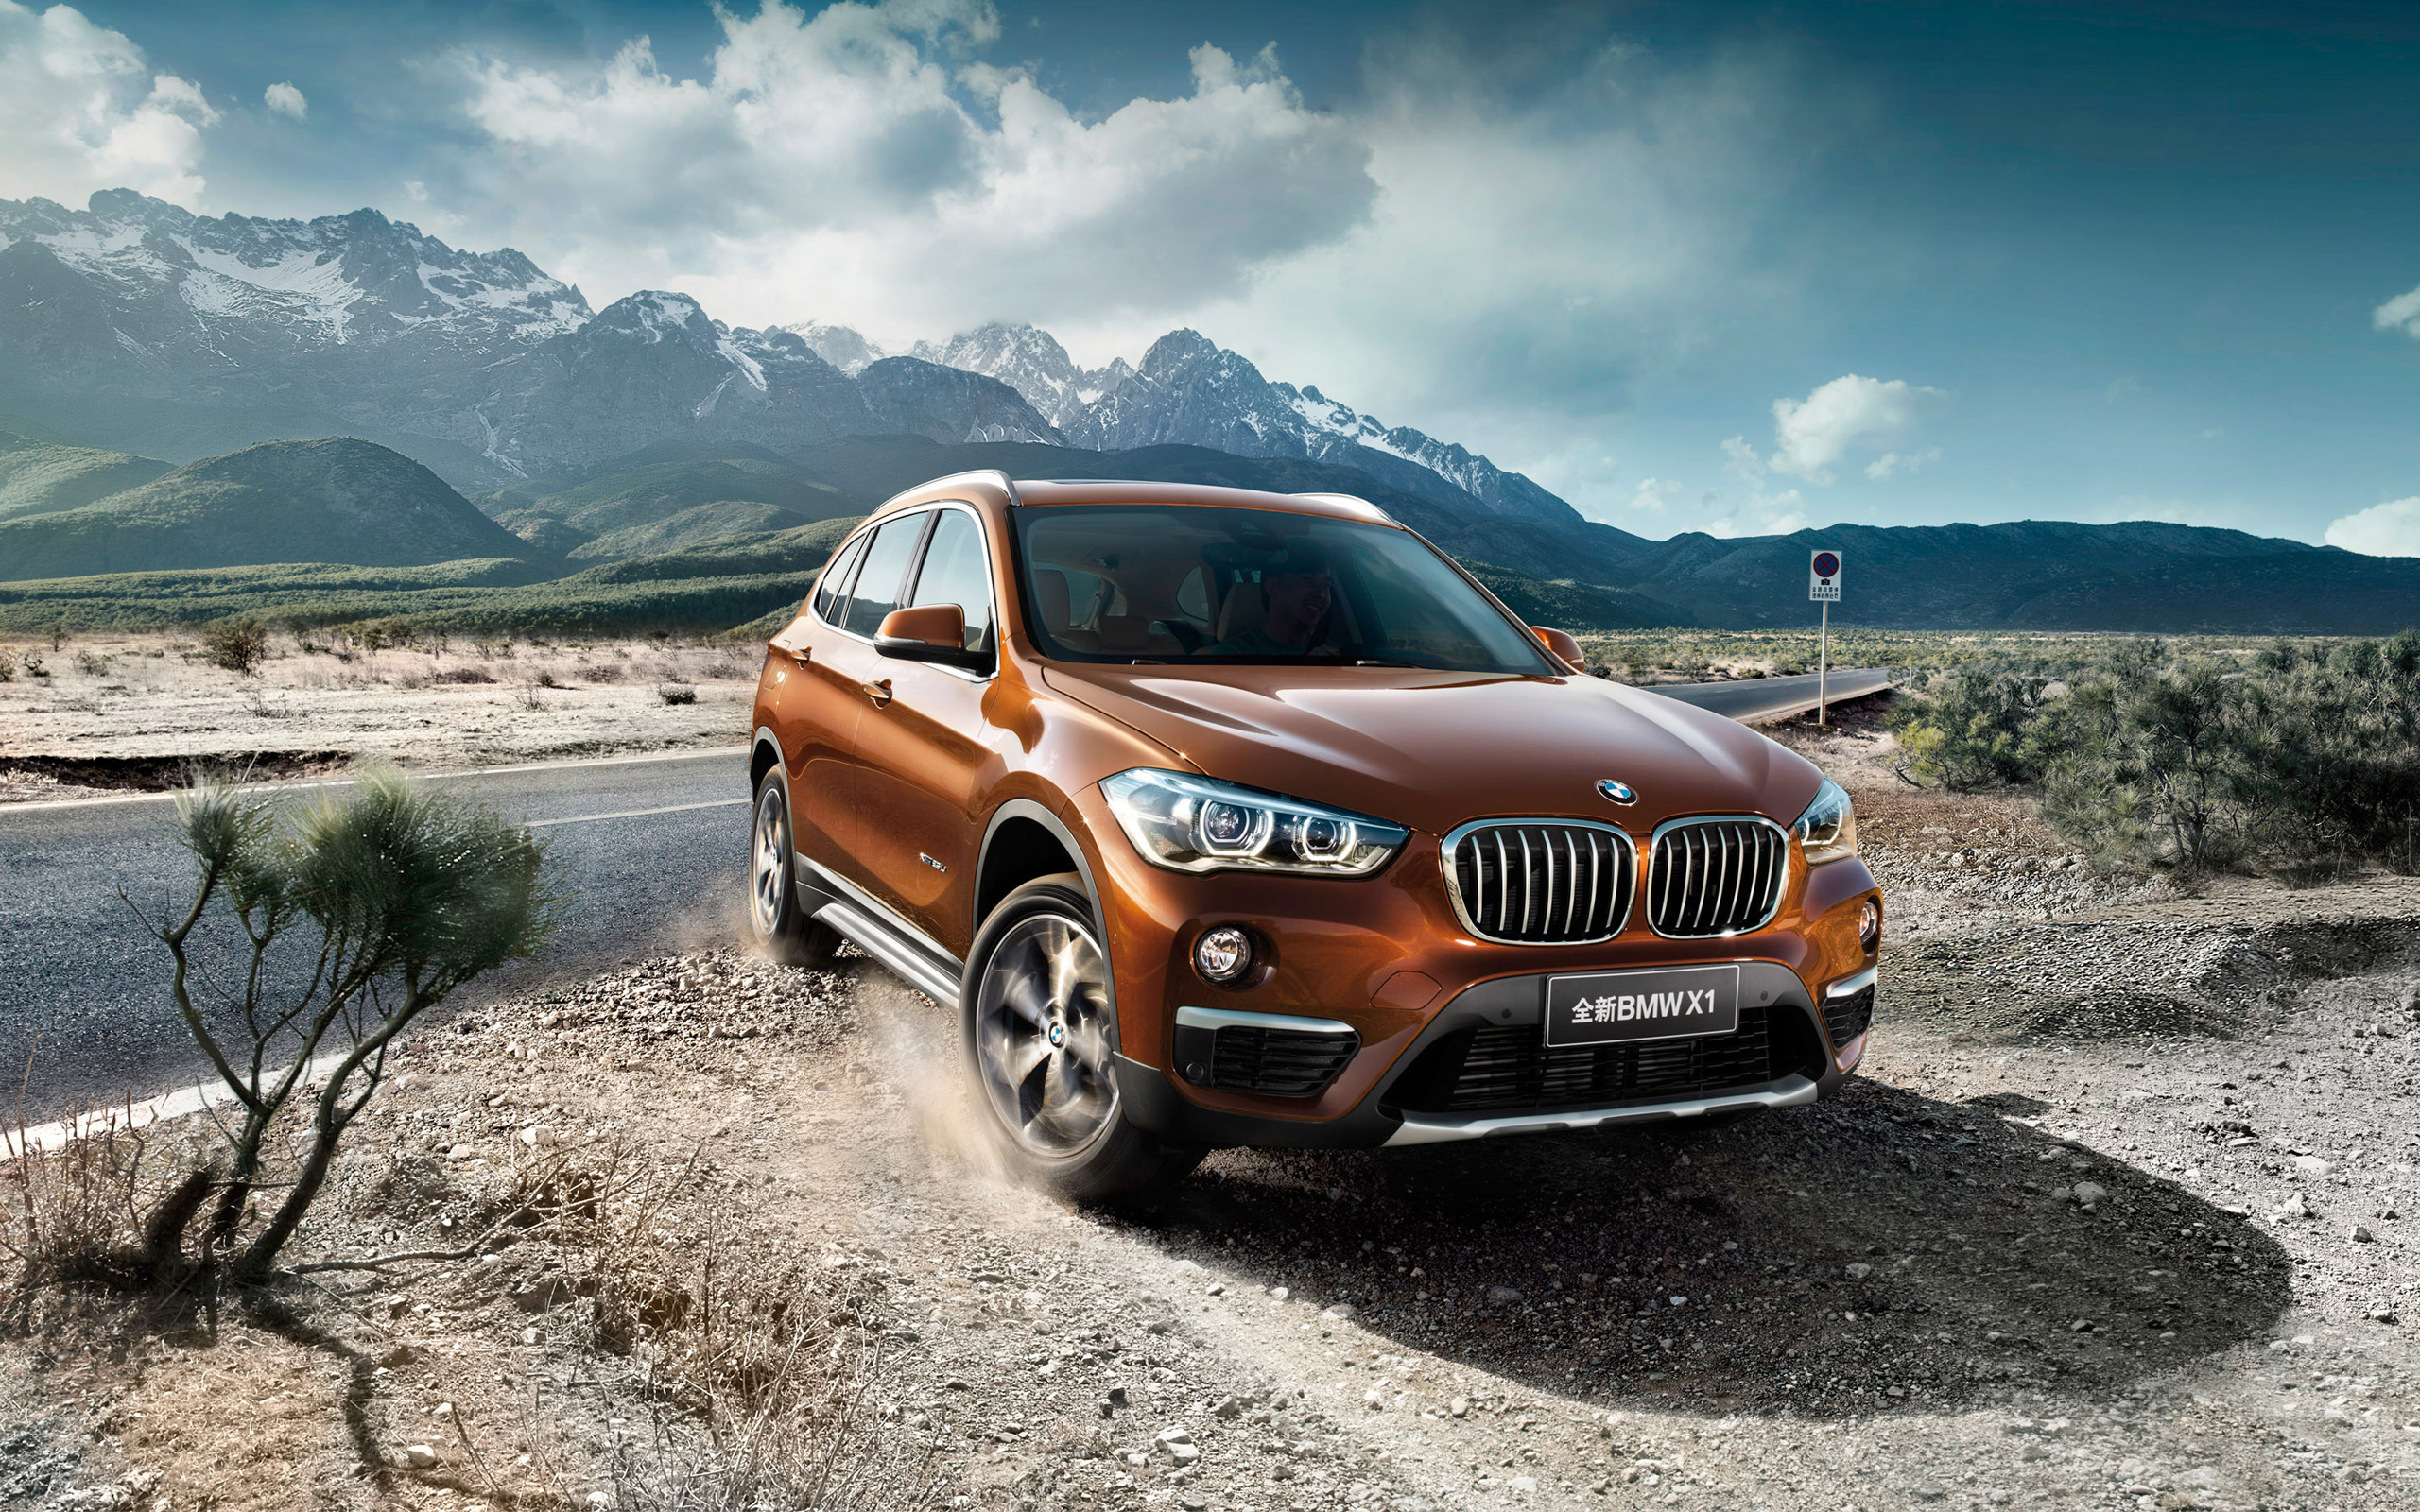 2016 bmw x1 long wheelbase wallpaper hd car wallpapers id 6503. Black Bedroom Furniture Sets. Home Design Ideas